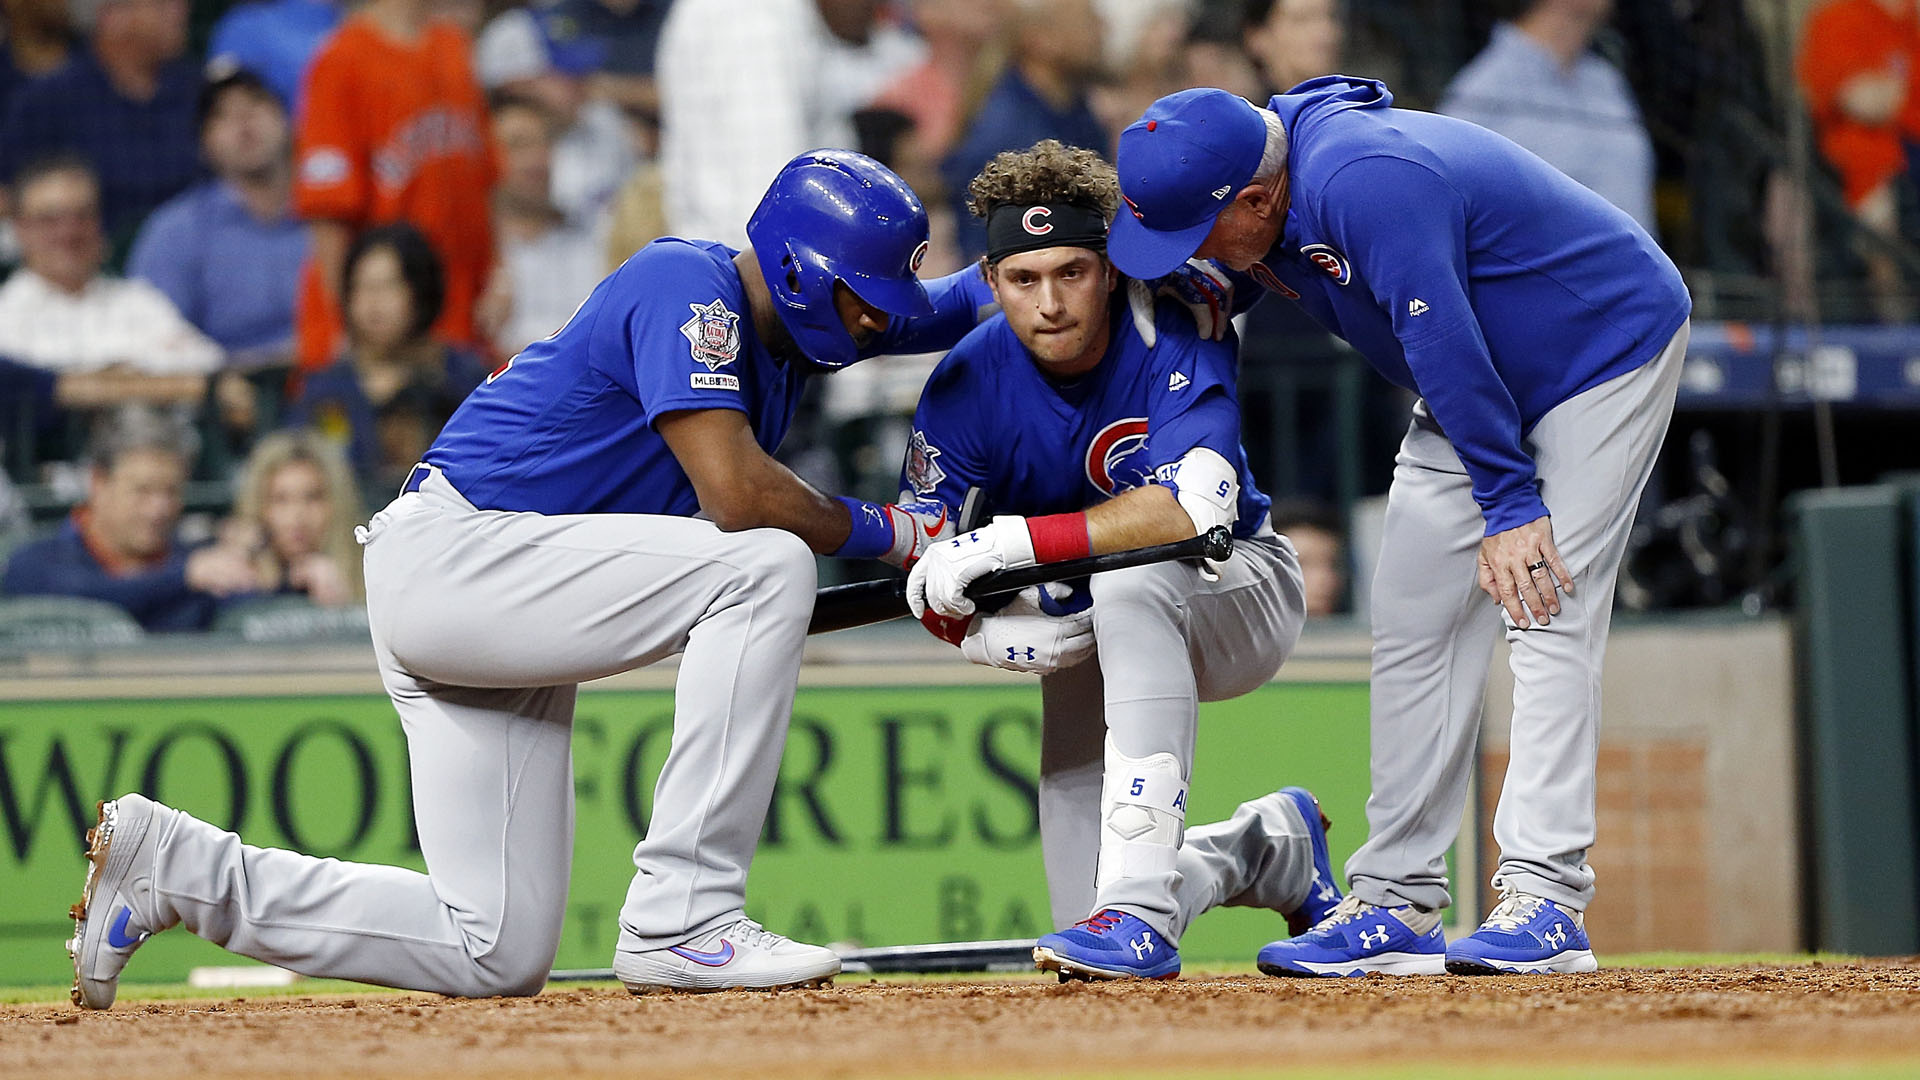 Albert Almora's line drive foul ball struck a child in the stands at Minute Maid Park on Wednesday.